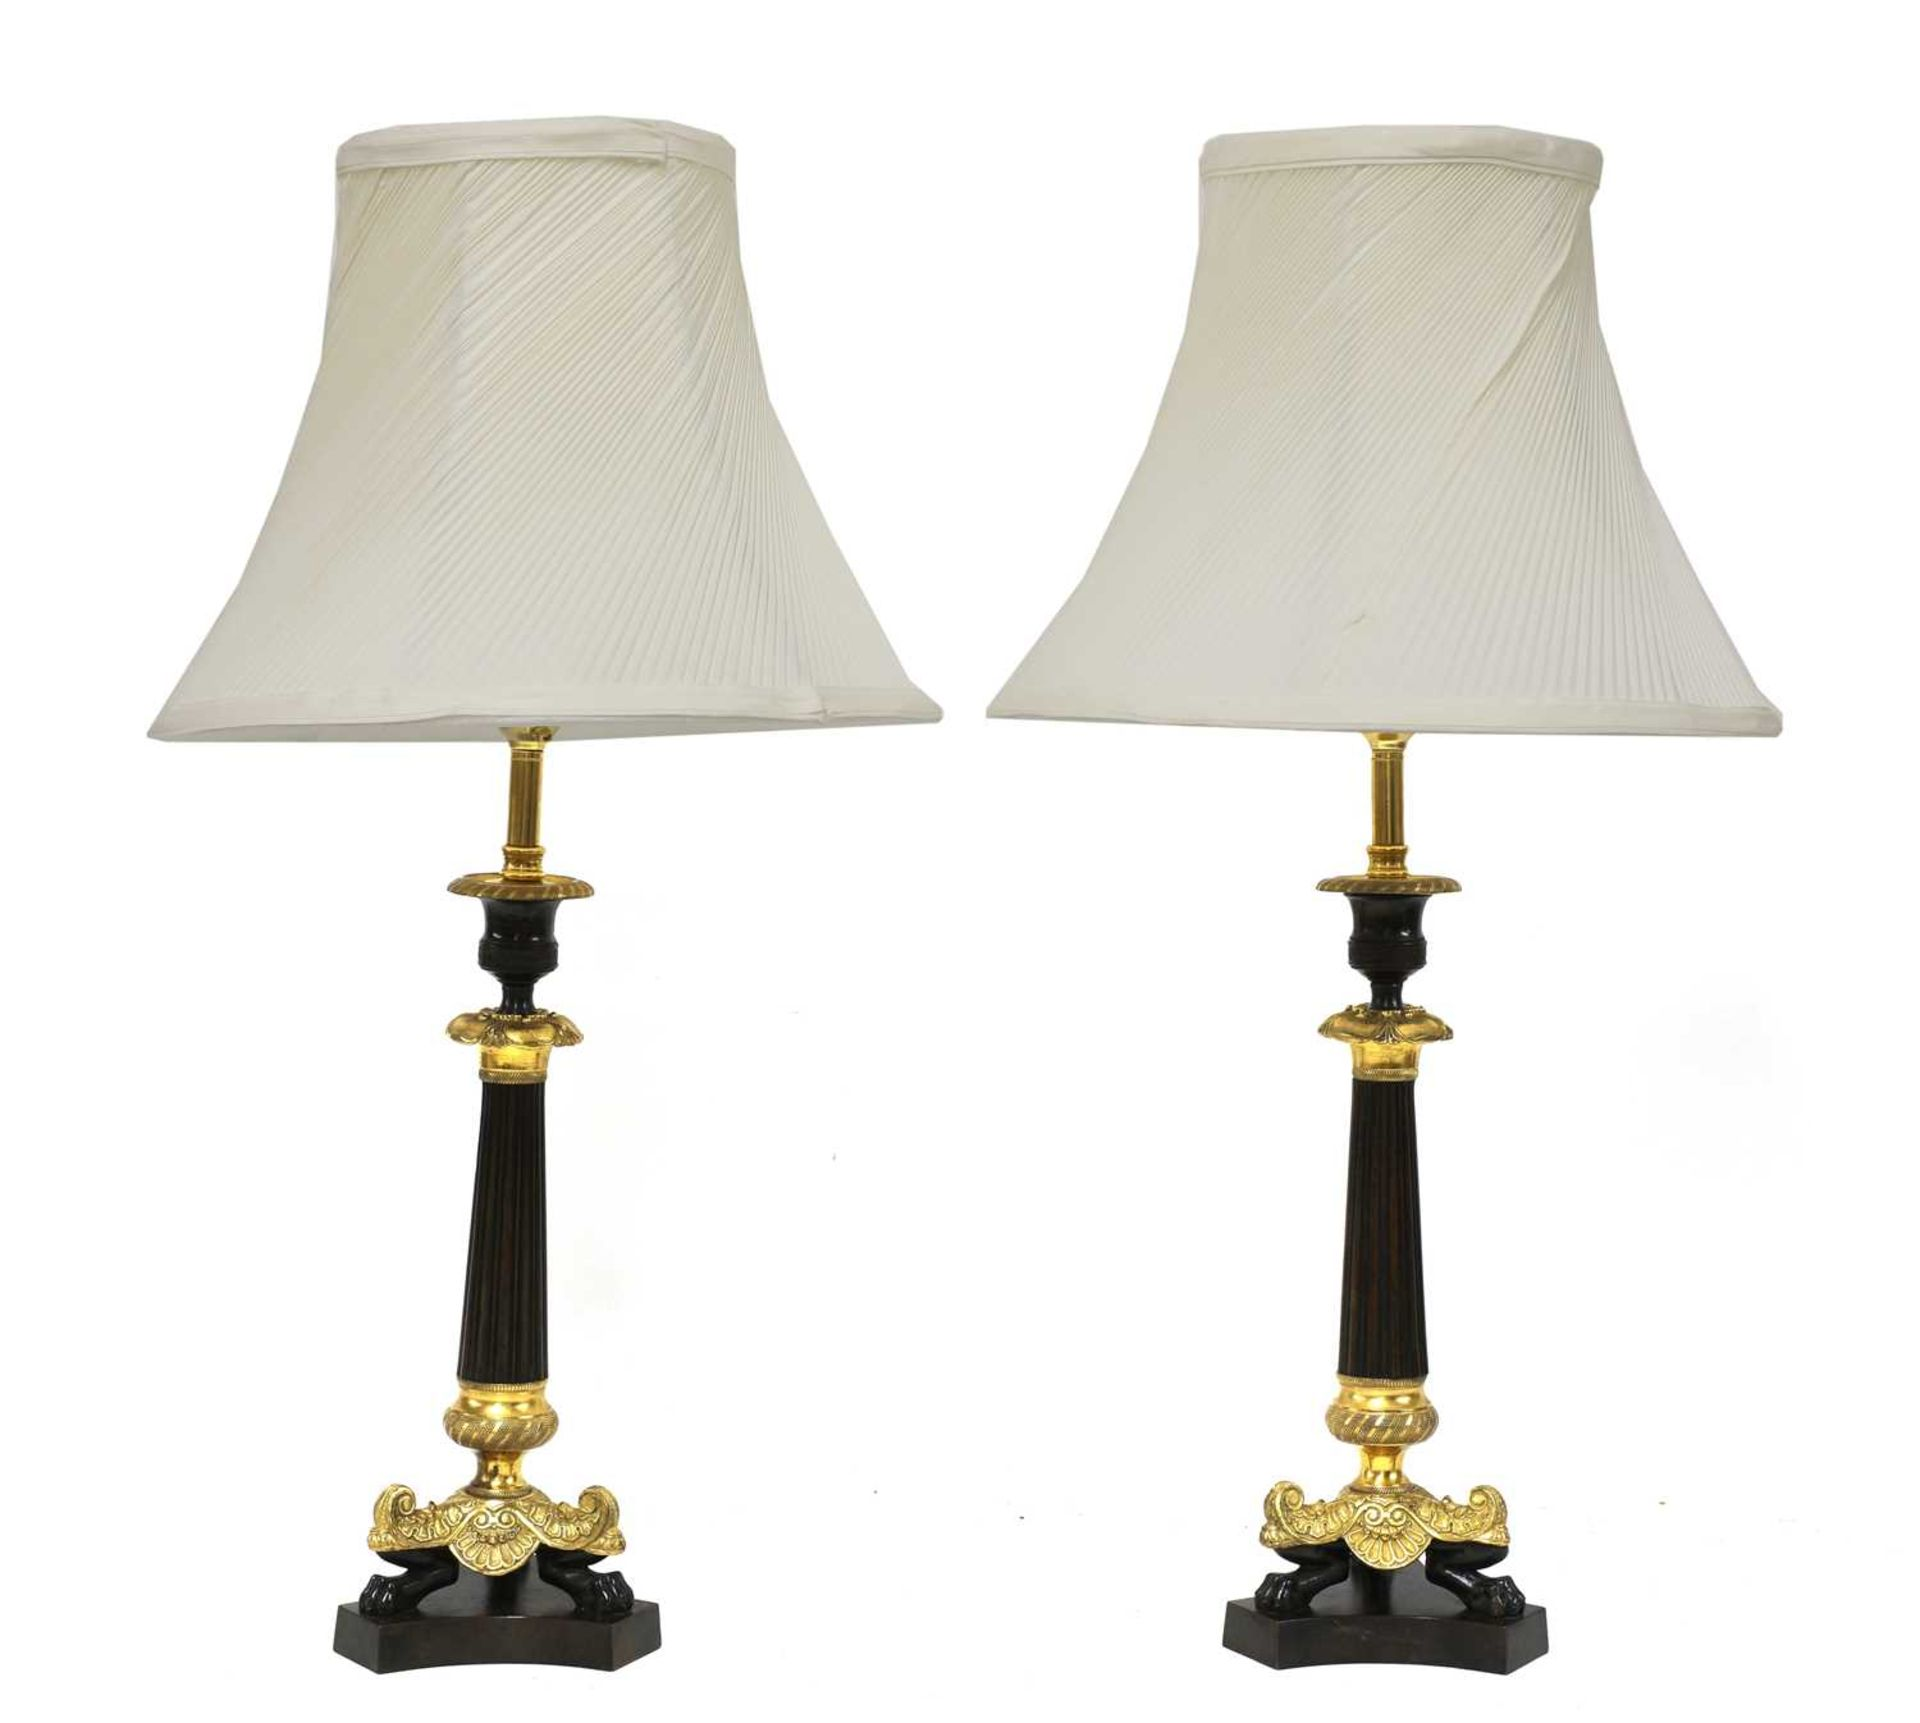 A pair of French Empire-style bronze and gilt-bronze candlesticks,